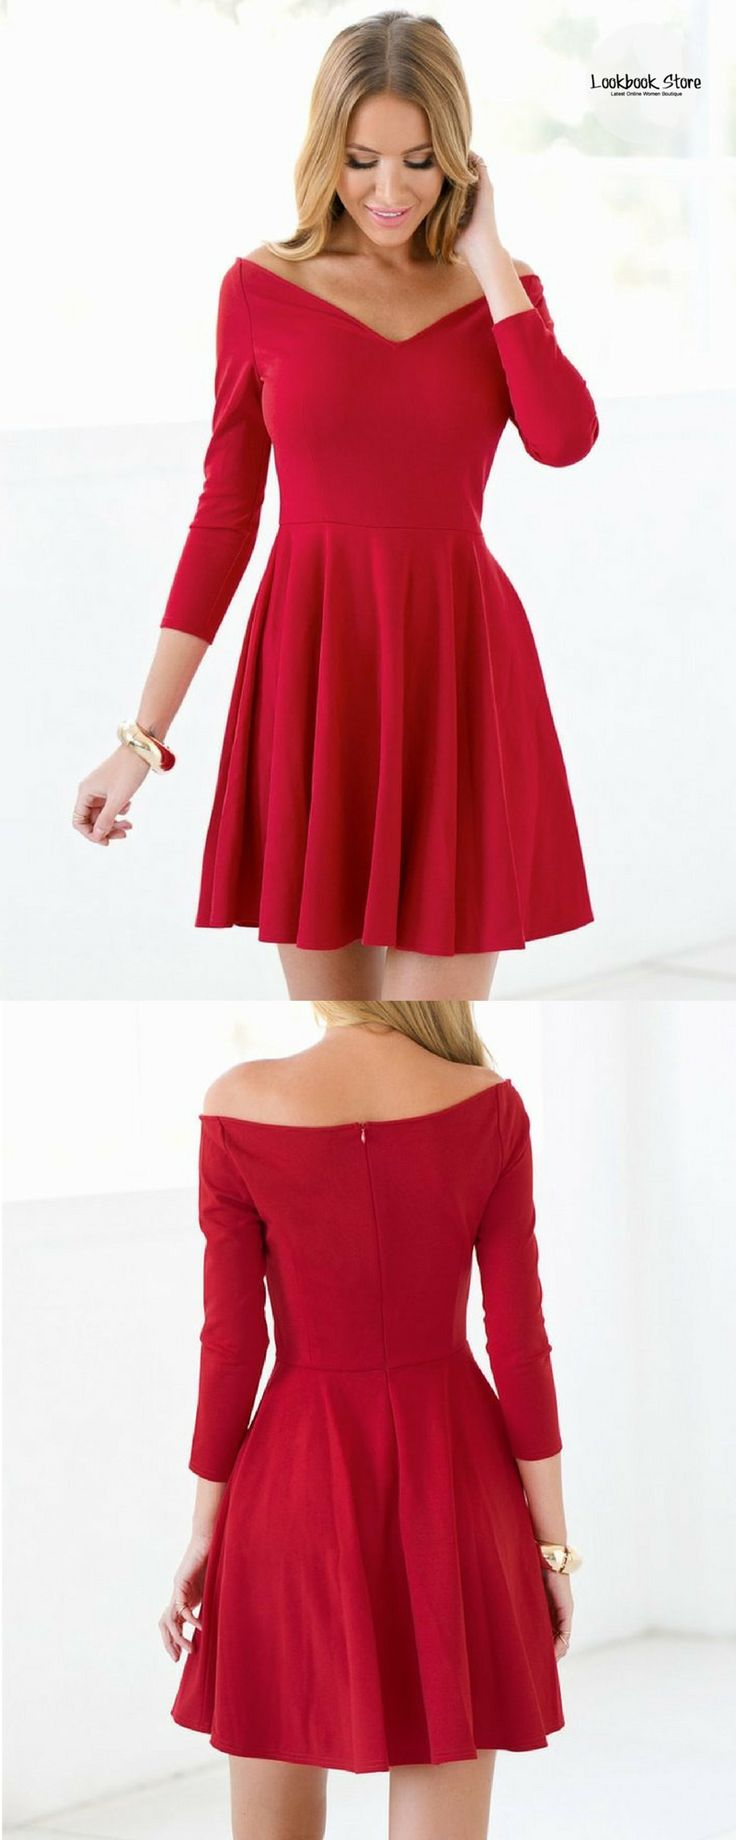 Dress // Party in style with this pretty red bardot neck A-line dress.